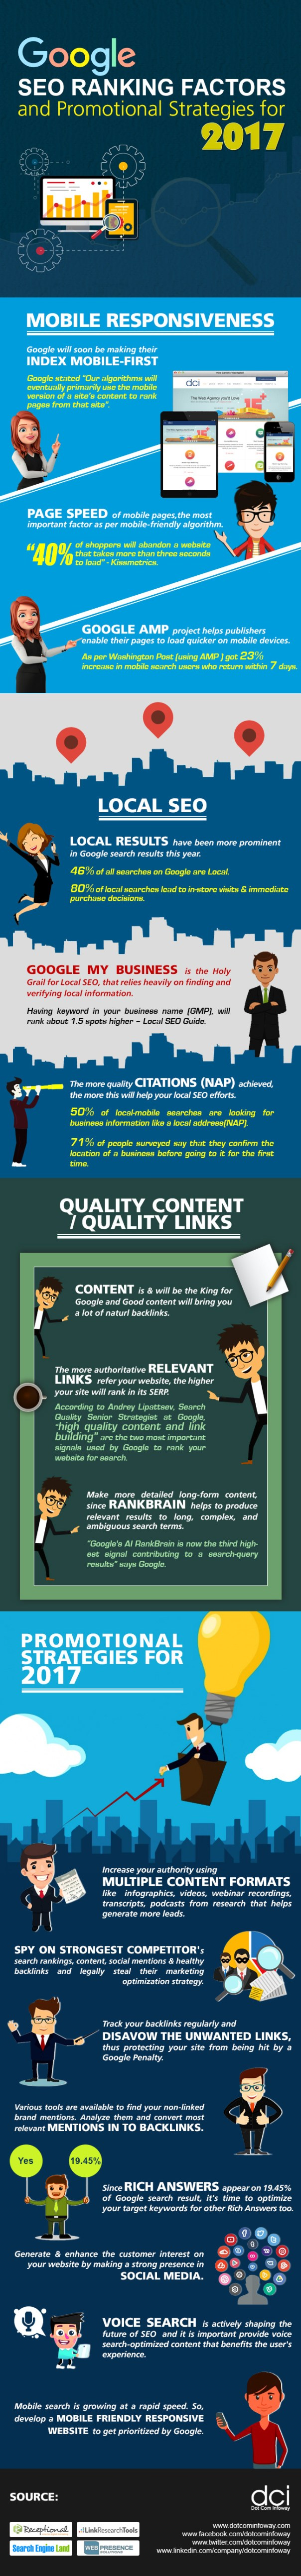 Google SEO Ranking Factors & Promotional Strategies for 2017 [Infographic]